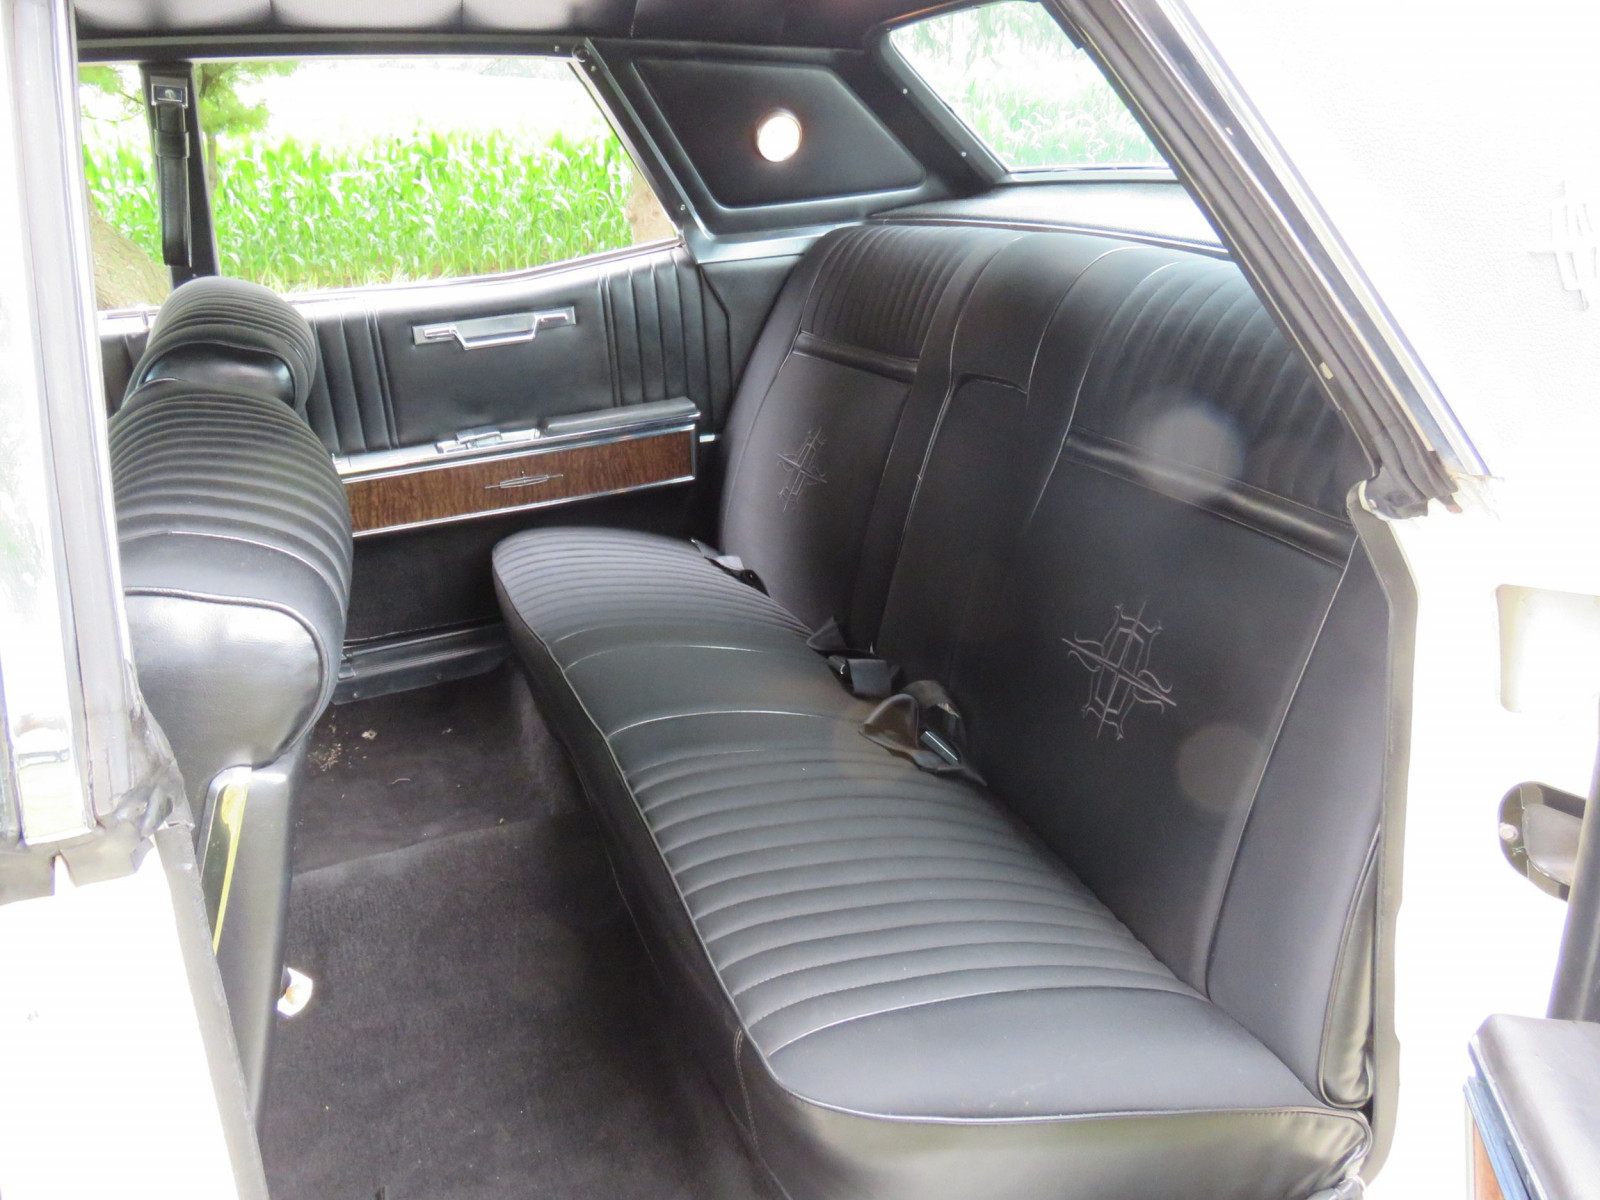 1967 Lincoln Continental 4dr HT Suicide Sedan - Image 10